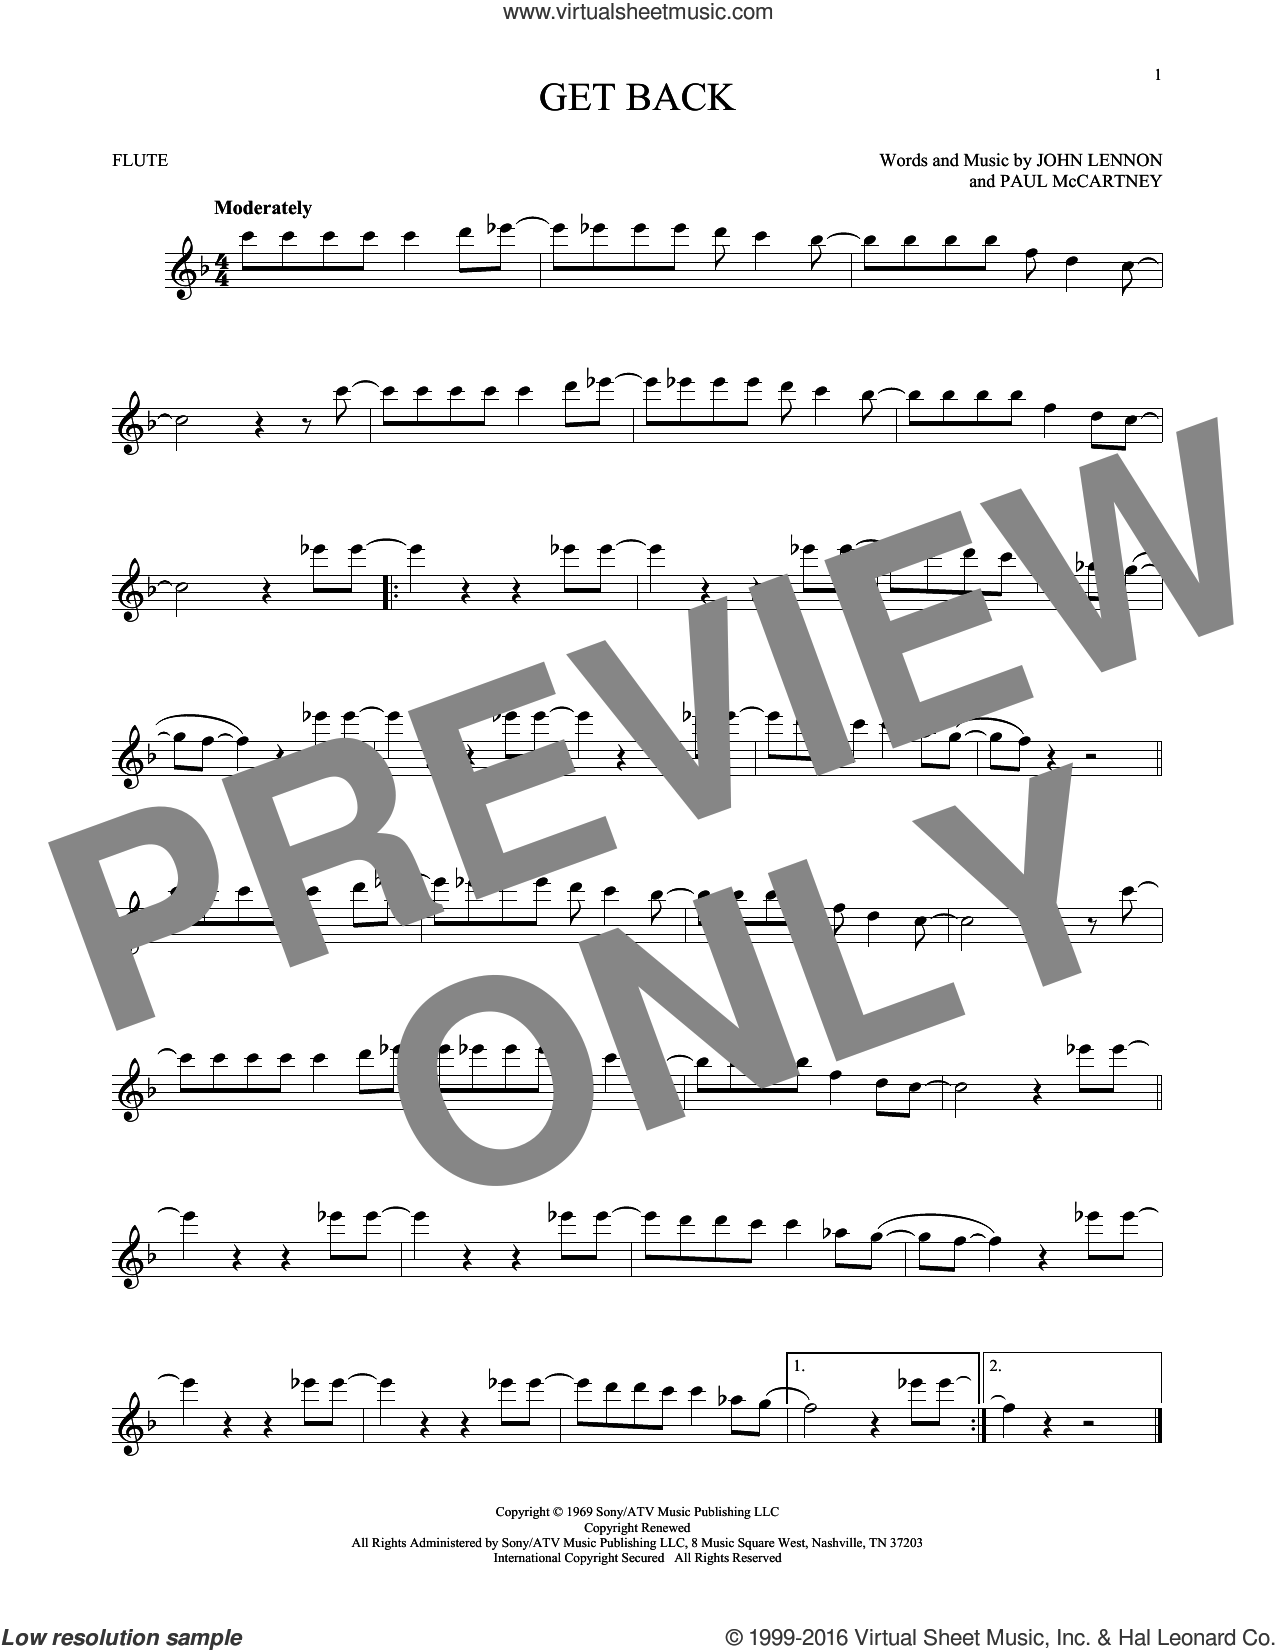 Get Back sheet music for flute solo by The Beatles, John Lennon and Paul McCartney, intermediate skill level